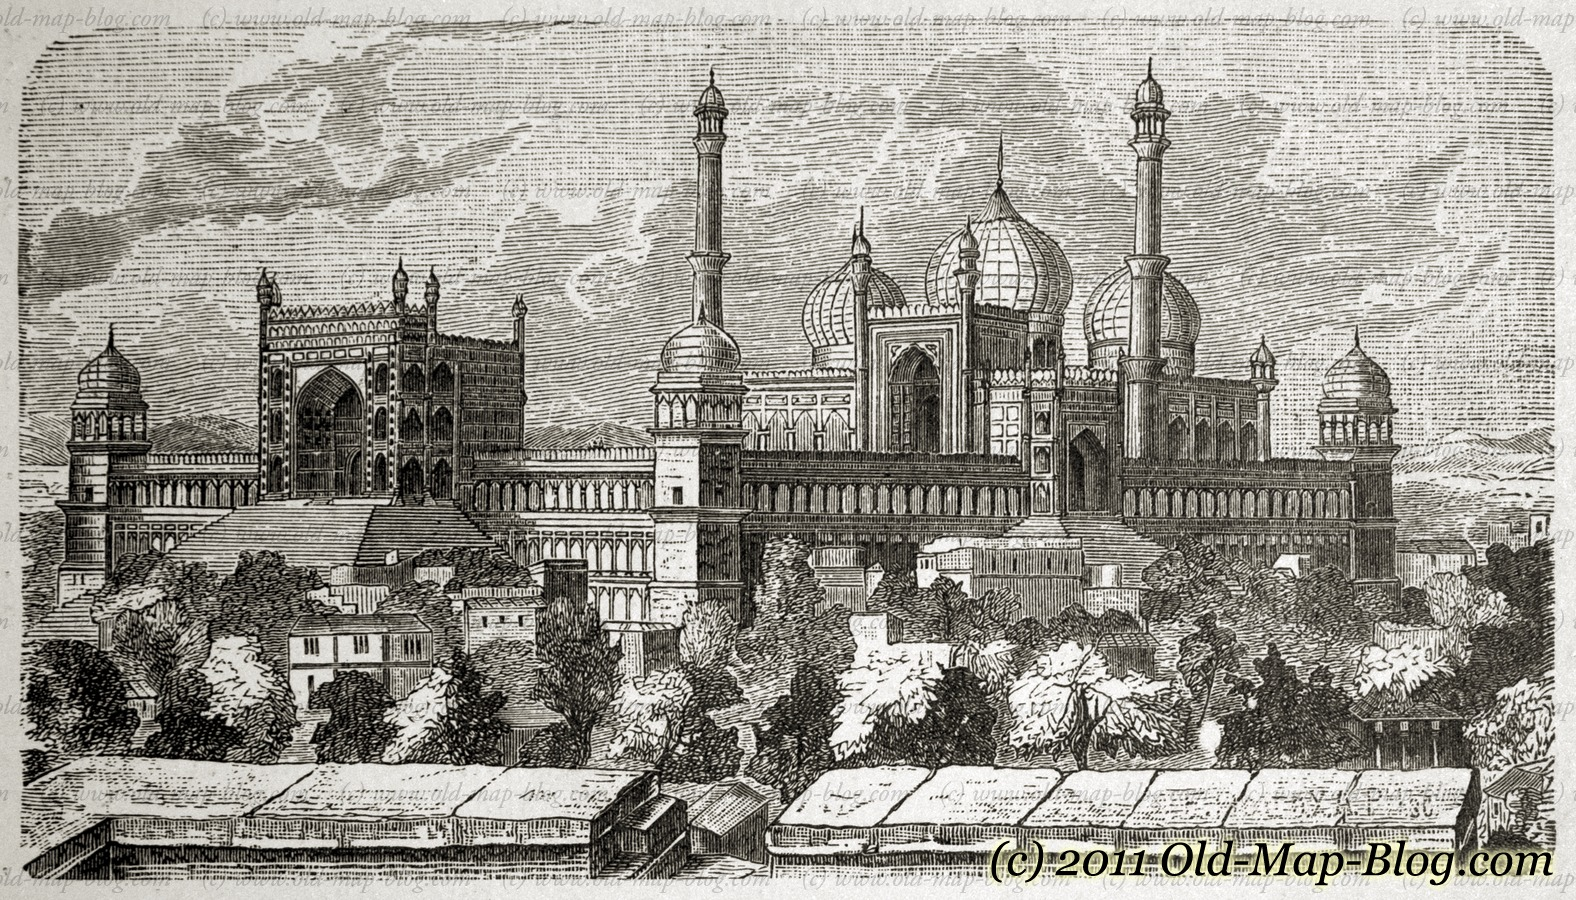 http://www.old-map-blog.com/wp-content/uploads/19th_century_engraving_Mosque_in_Dehlis_illklgeol_201.jpg